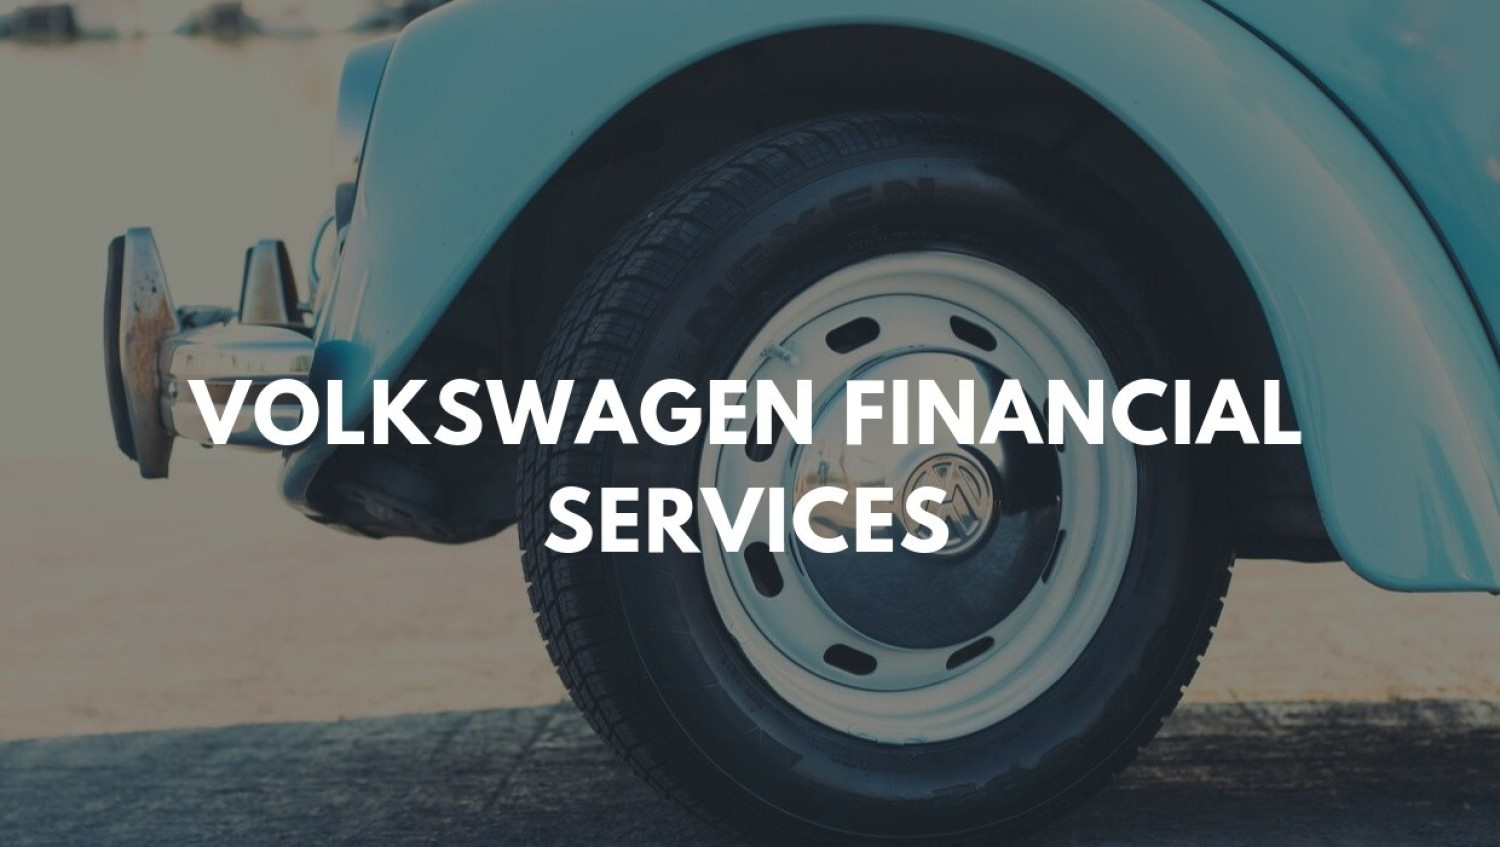 6. Volkswagen Financial Services AG*